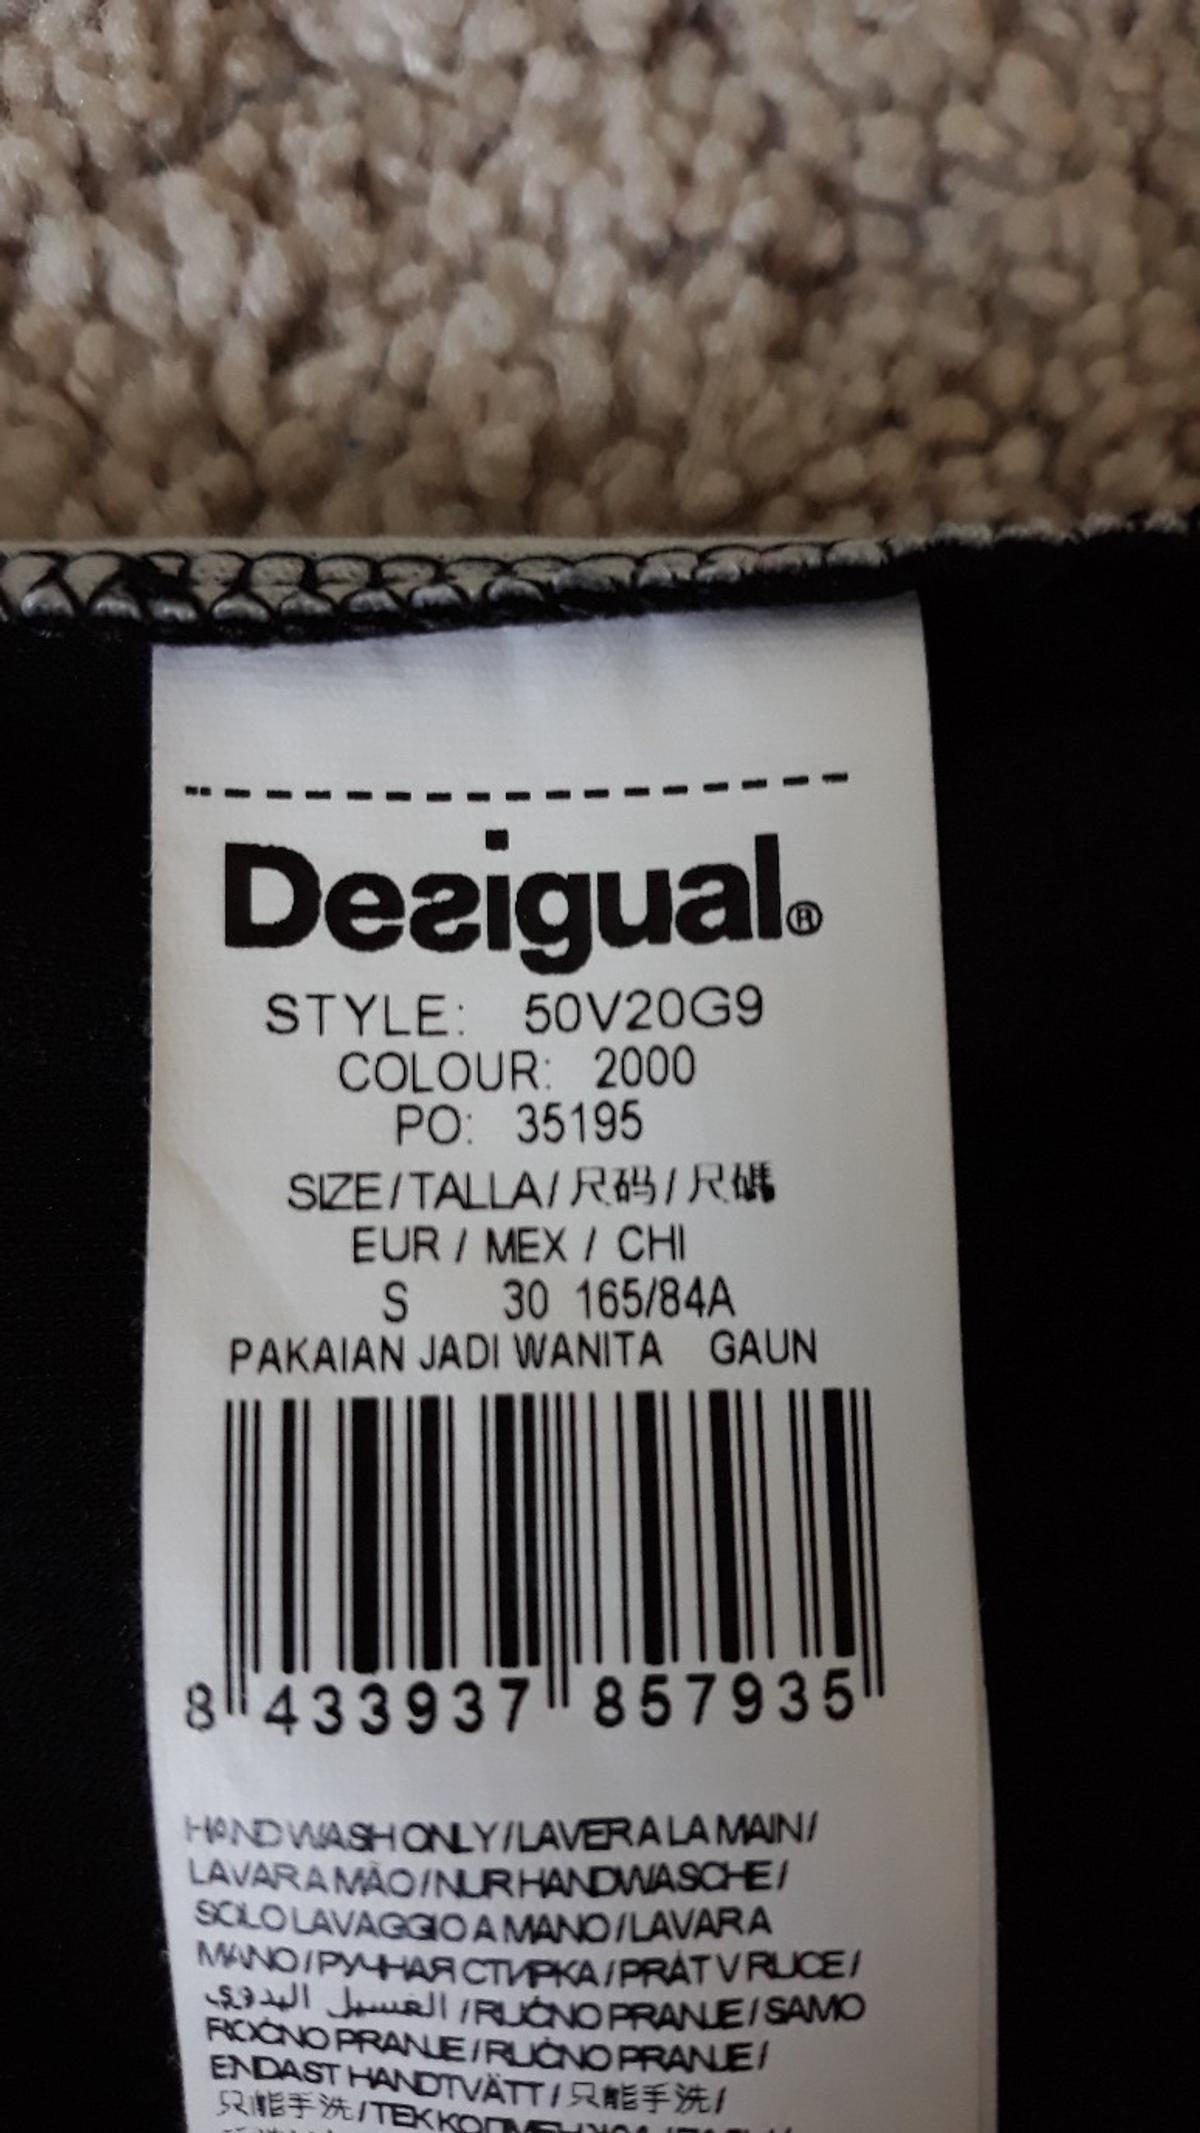 Verkaufe schwarzes Desigual Kleid in Größe S mit etwas tieferen Rückenausschnitt.